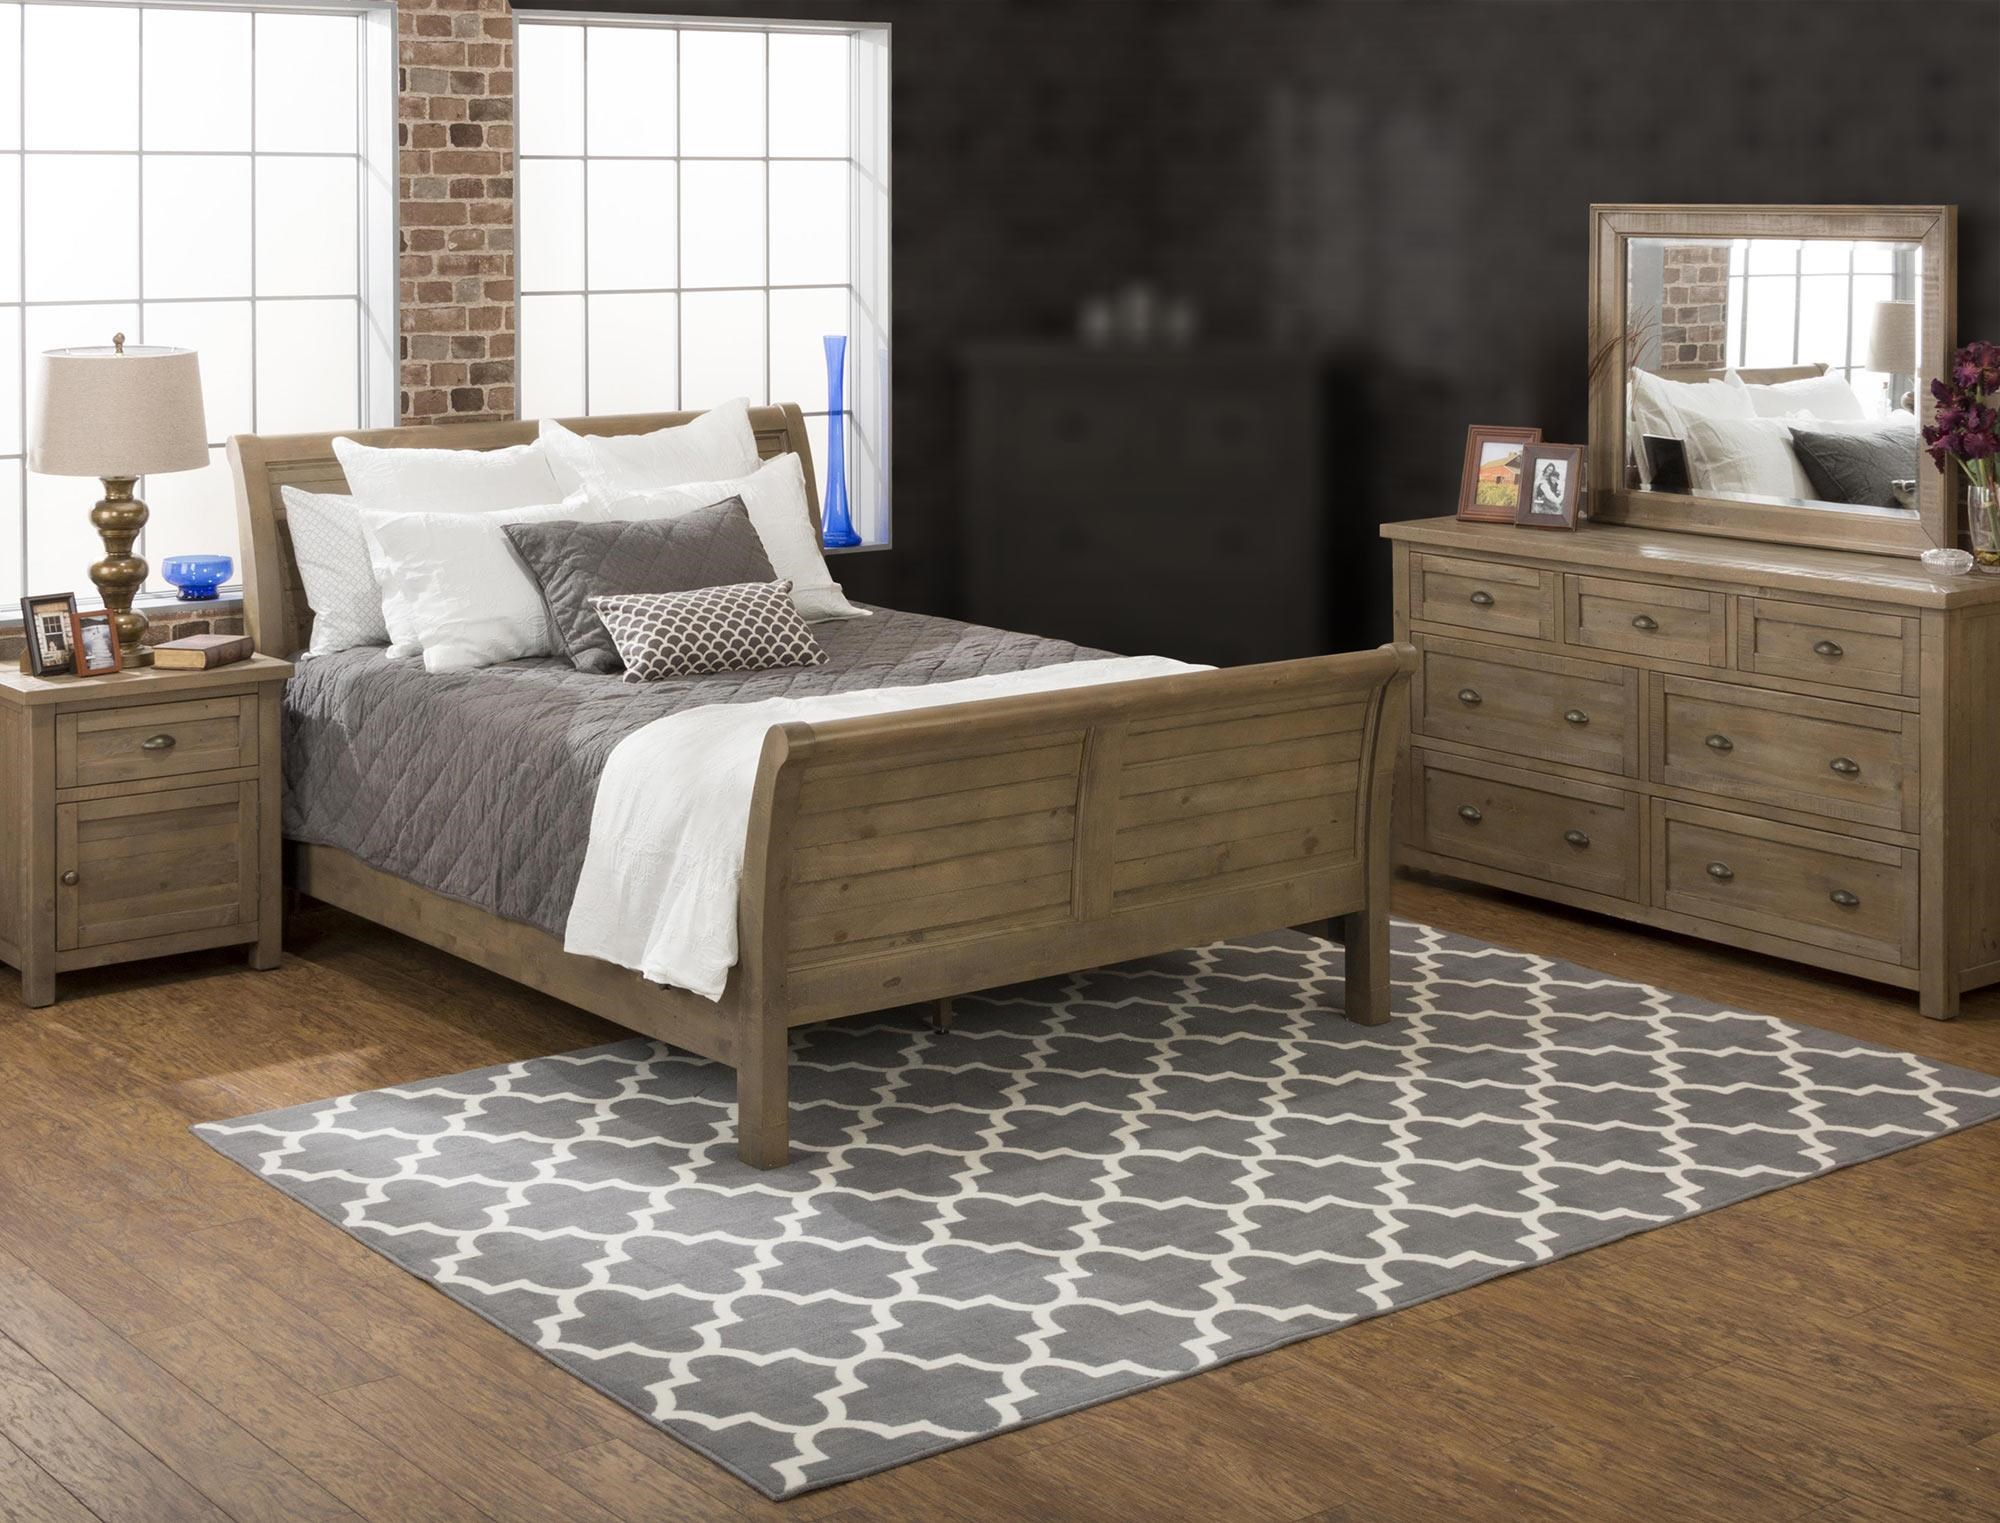 Jofran Bancroft Mills 4PC King Bedroom Set - Item Number: 943-4PC-KBR